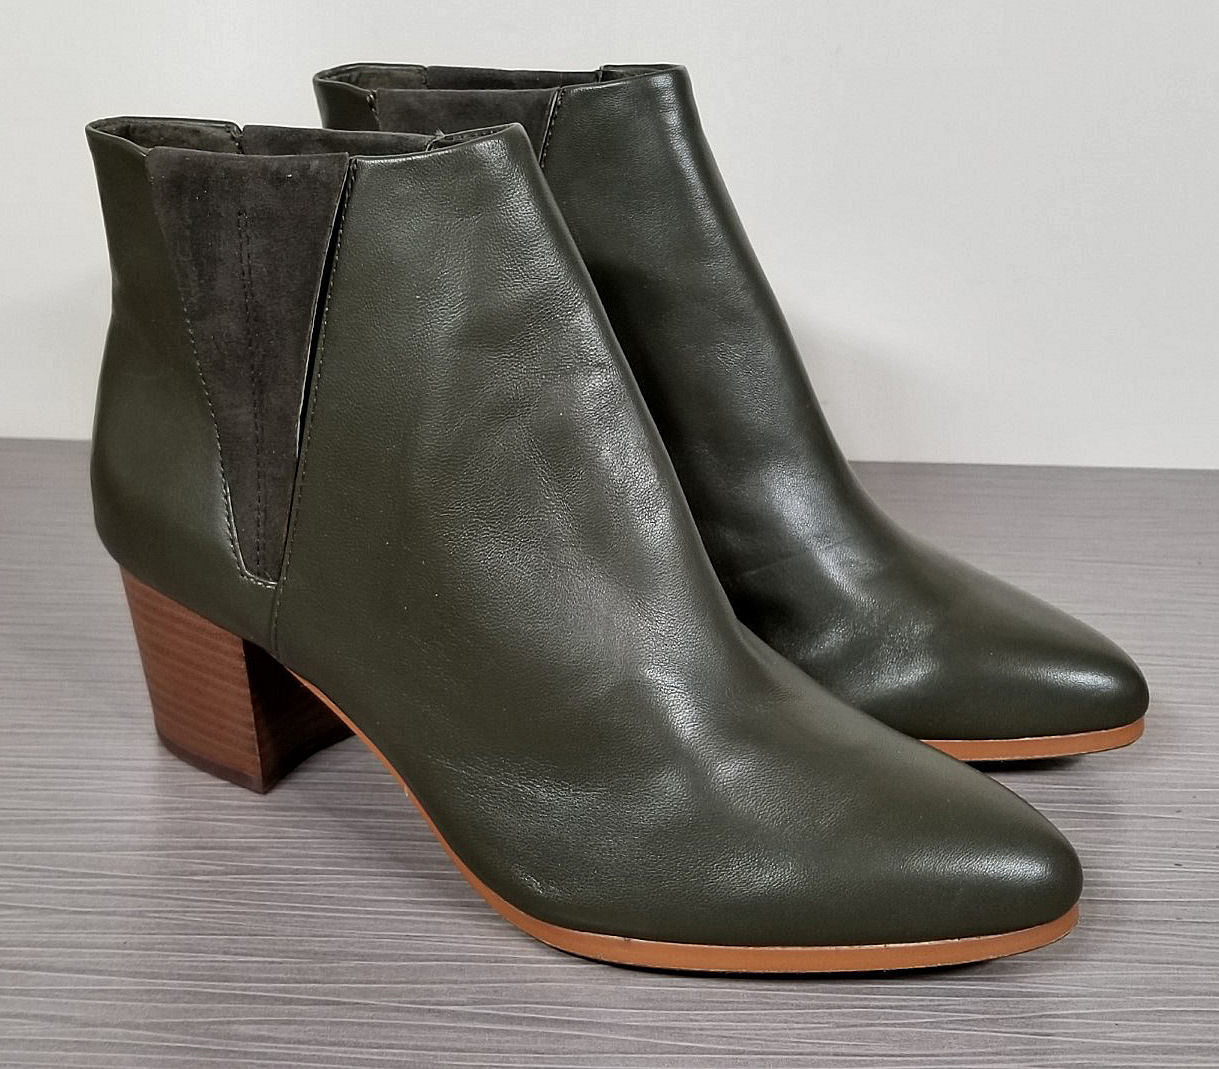 Vince Camuto Brissa Dress Booties, Tornado Leather, Womens Various Sizes